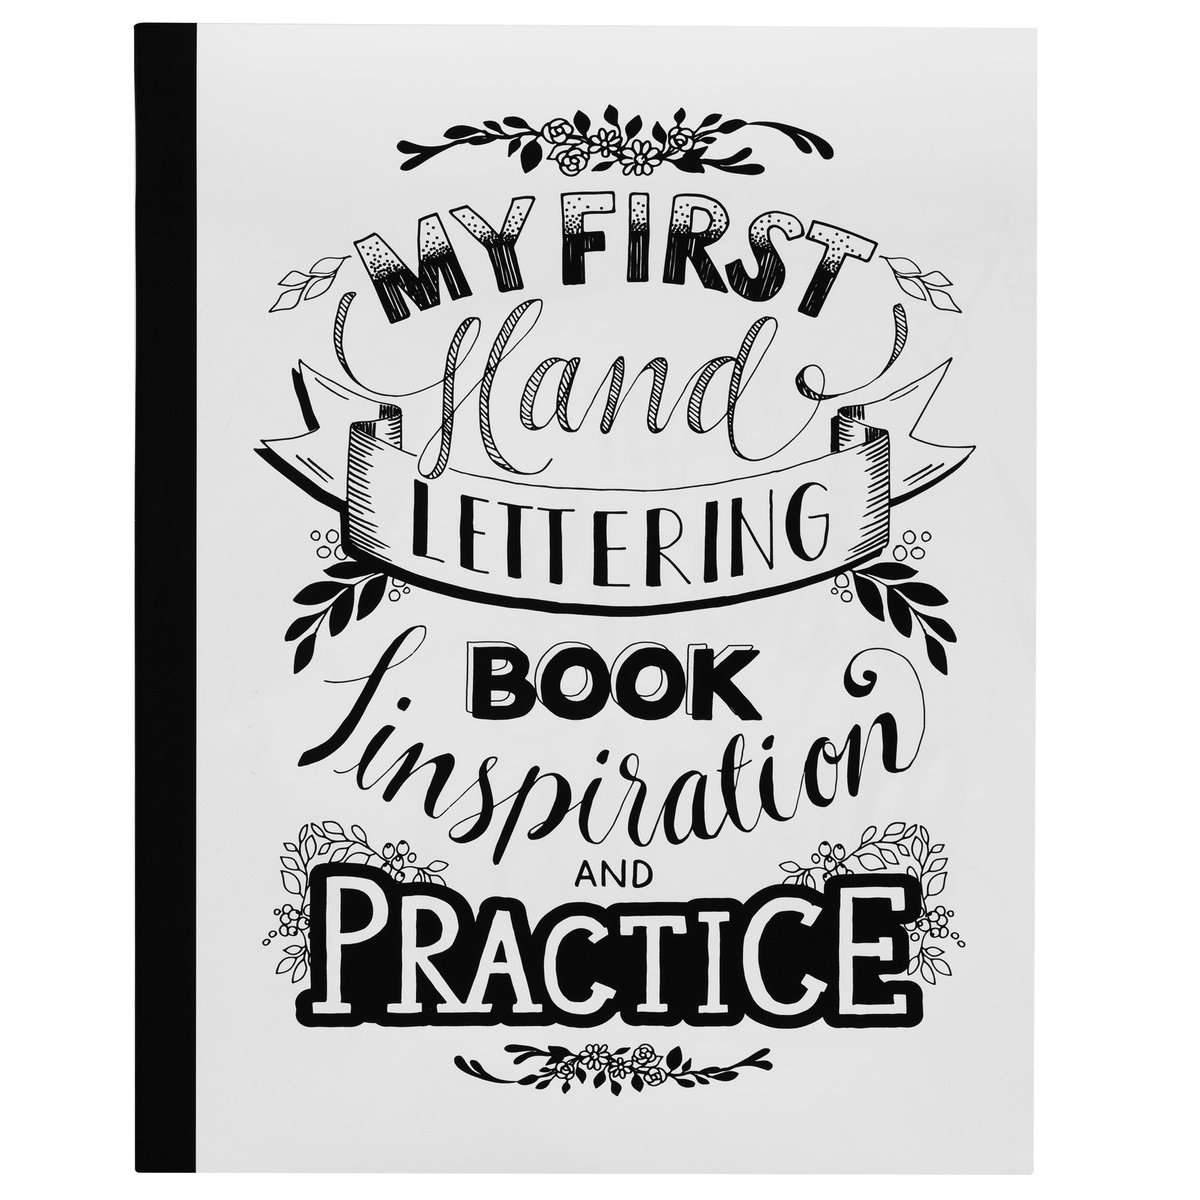 My first Hand Lettering book